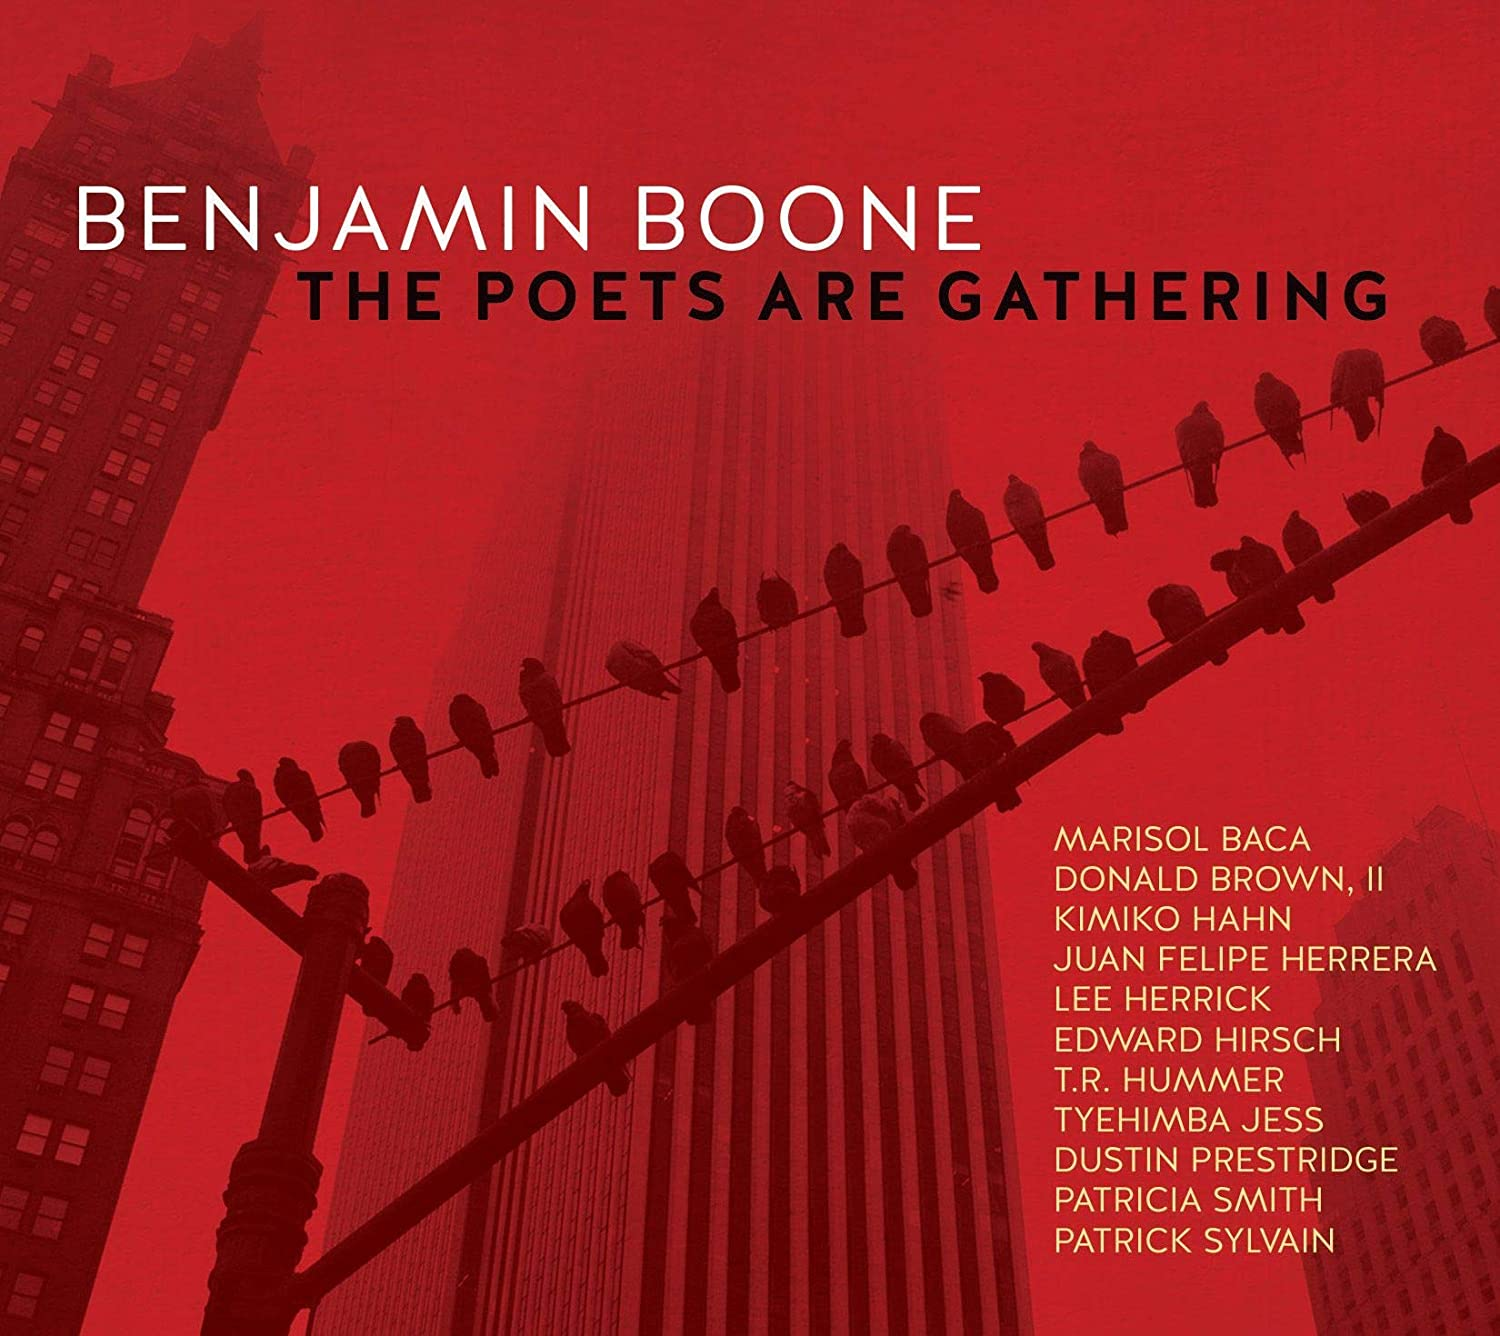 BENJAMIN BOONE - The Poets Are Gathering cover